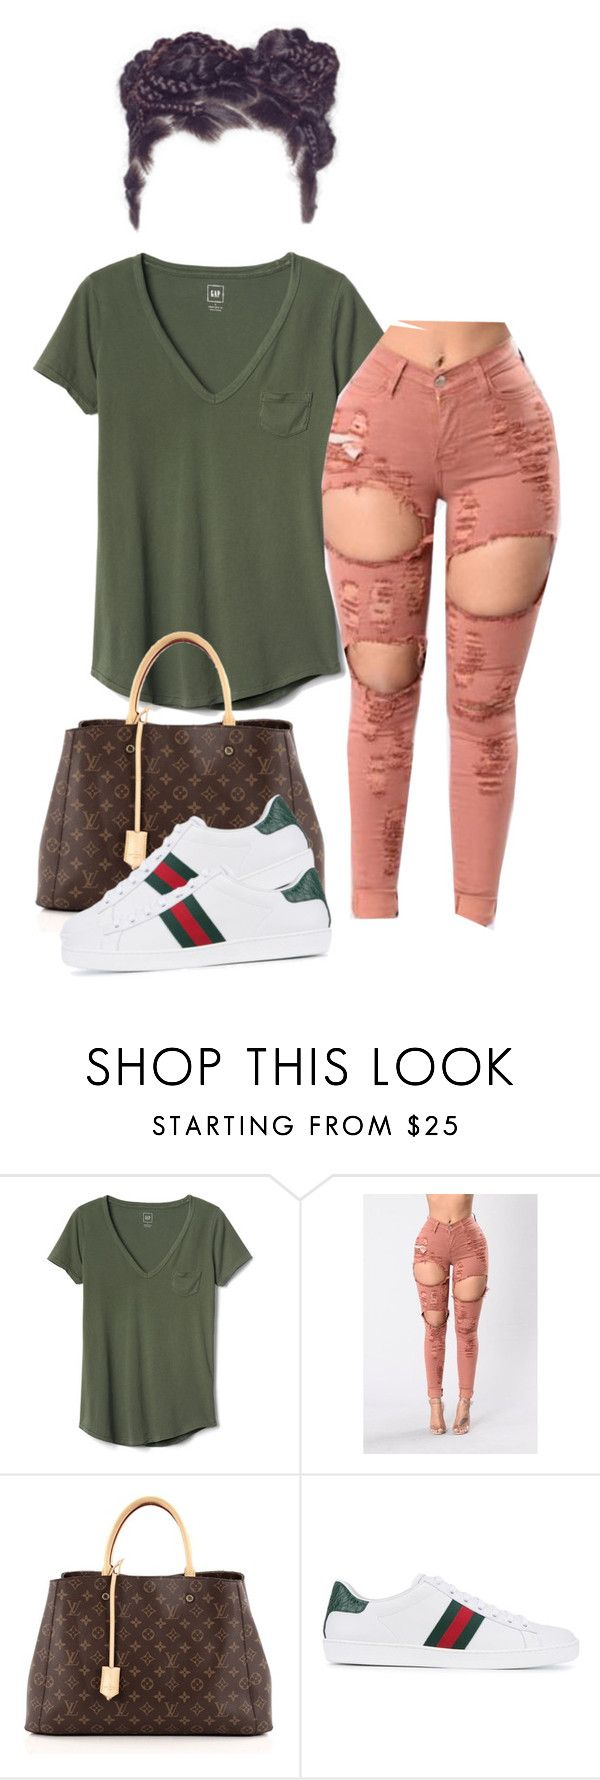 """""""Apuntar más alto"""" by queenofslay ❤ liked on Polyvore featuring Gap, Louis Vuitton and Gucci"""